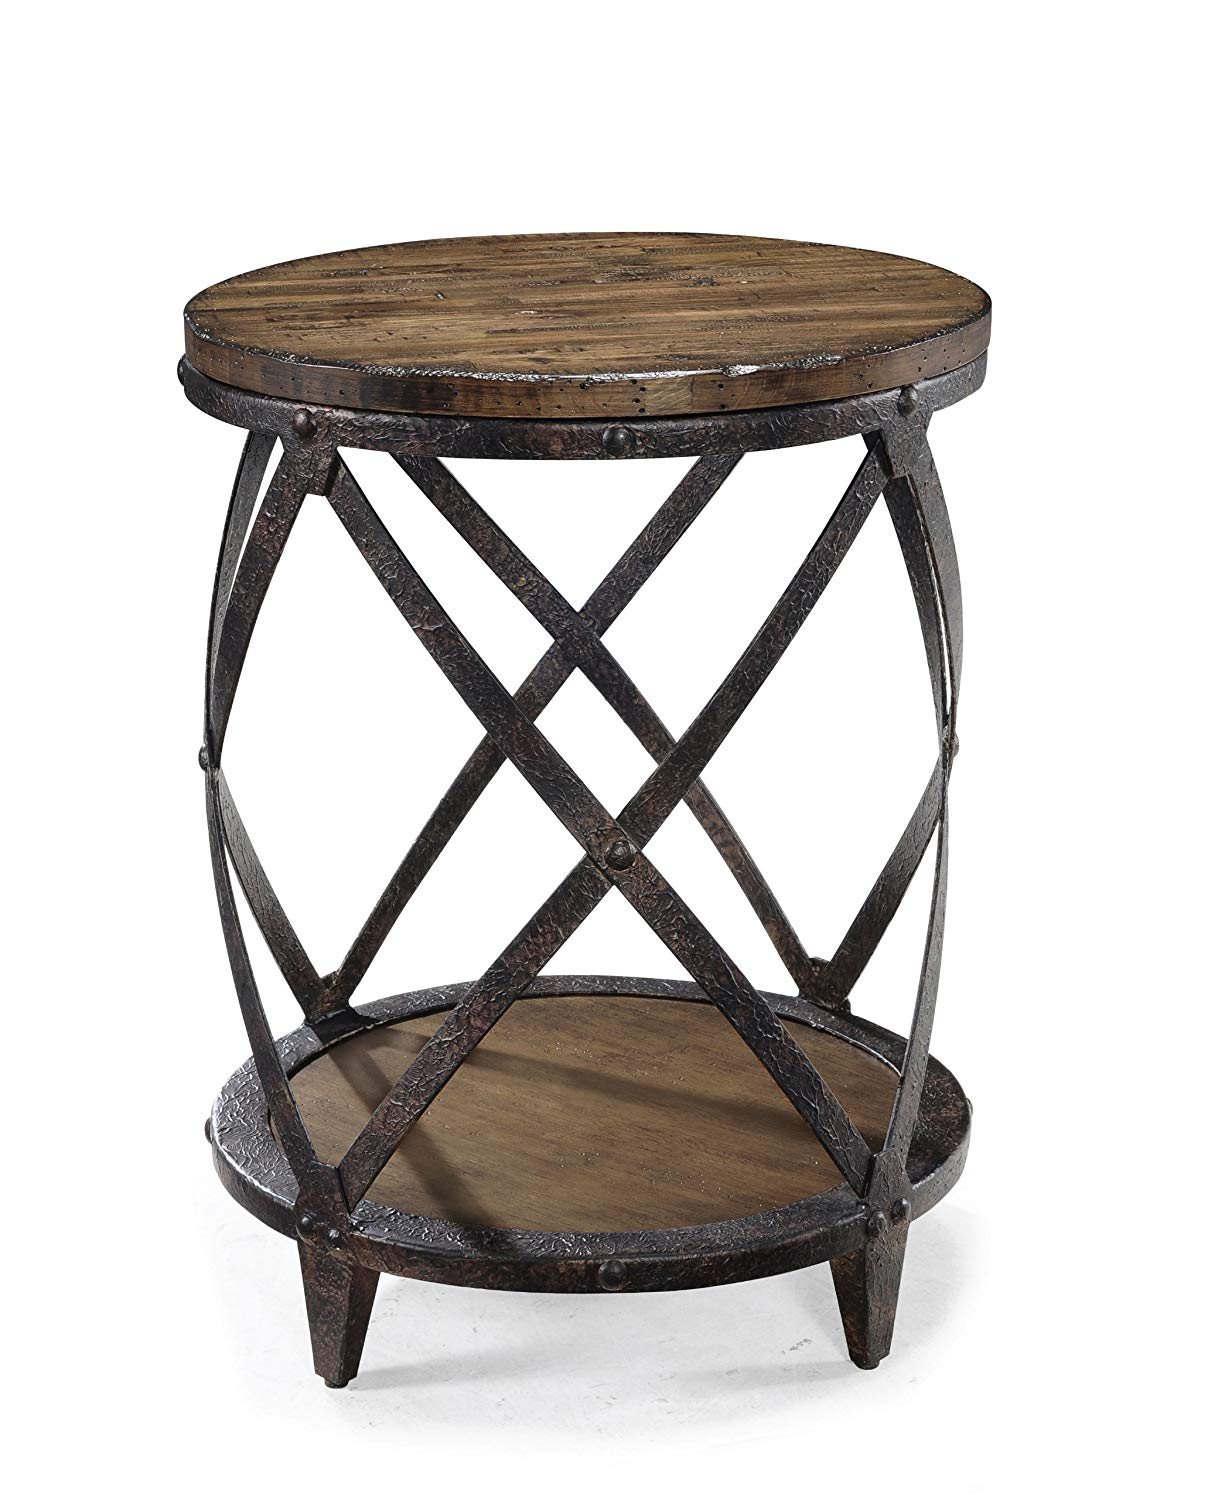 ashley furniture kitchen chairs the super unbelievable old wood magnussen pinebrook distressed natural pine end tables round accent table dining modern for living room tall side